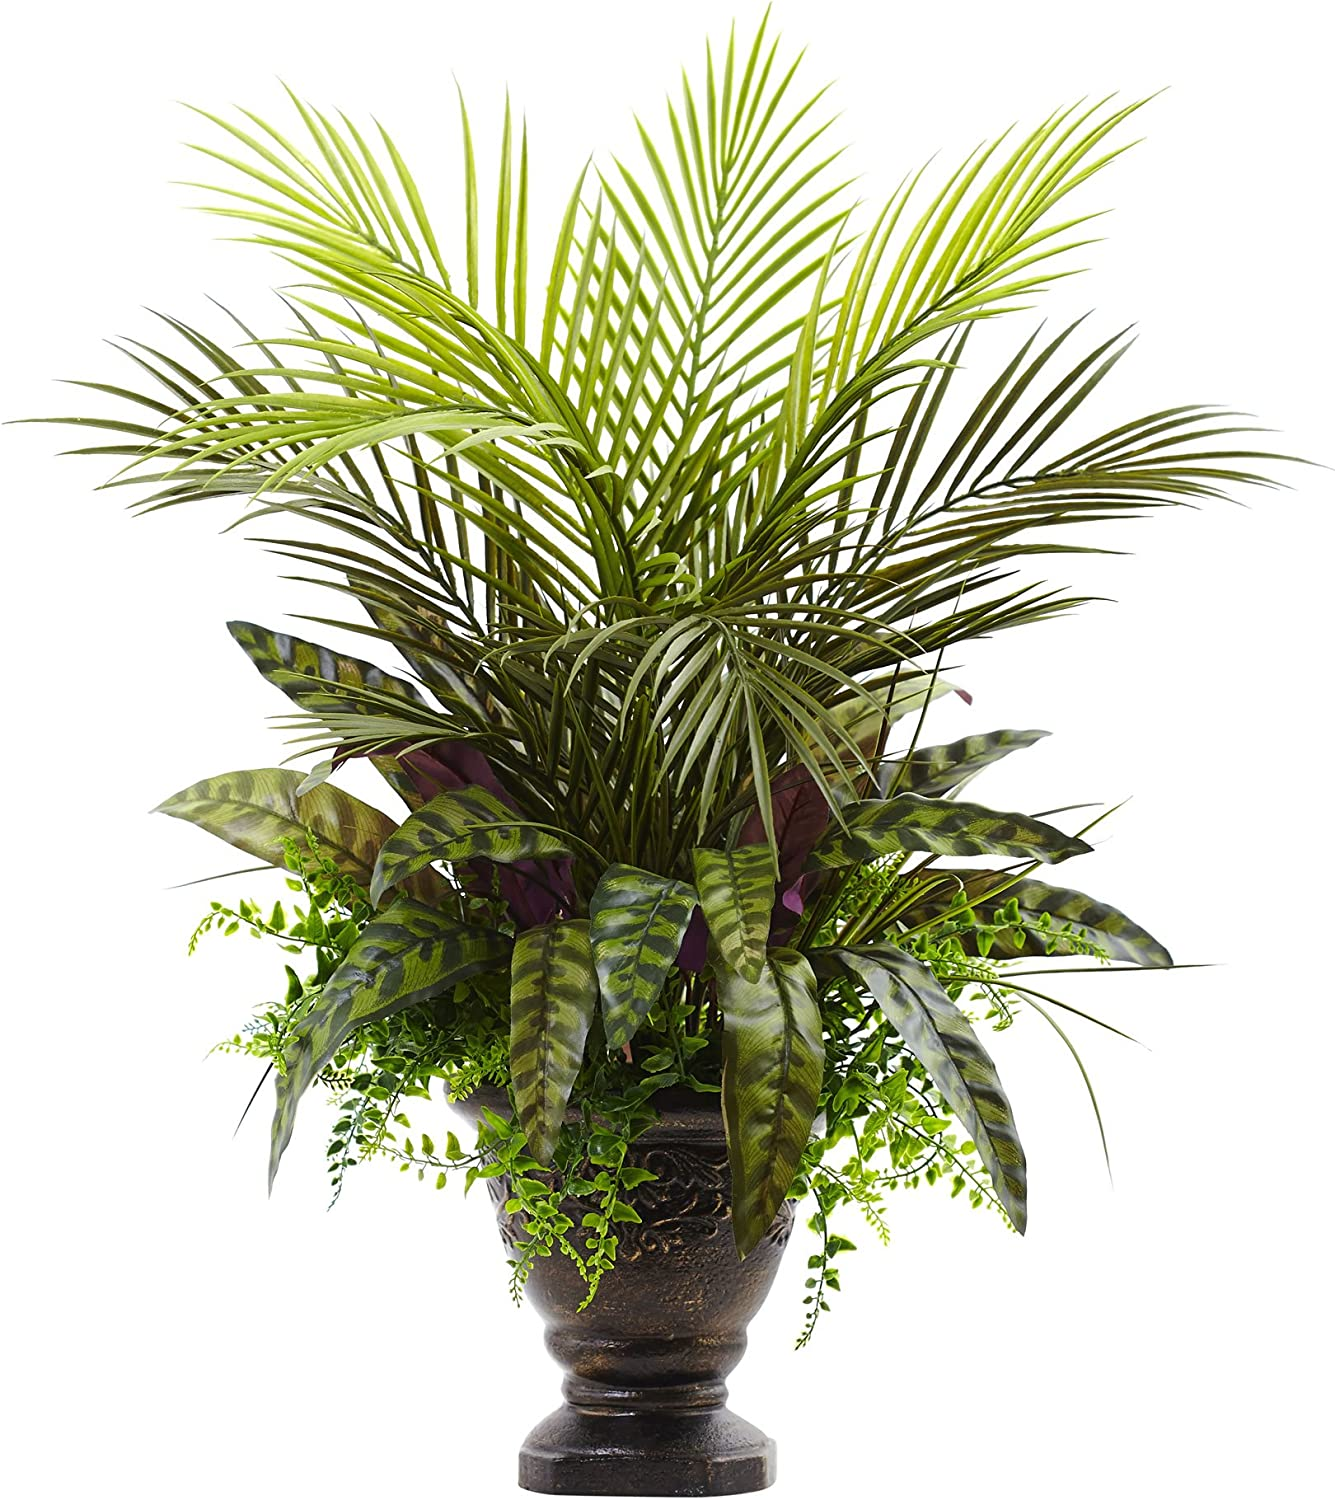 Nearly Natural 6828 Mixed Max 57% OFF Areca with Plante Max 58% OFF Palm Fern Peacock